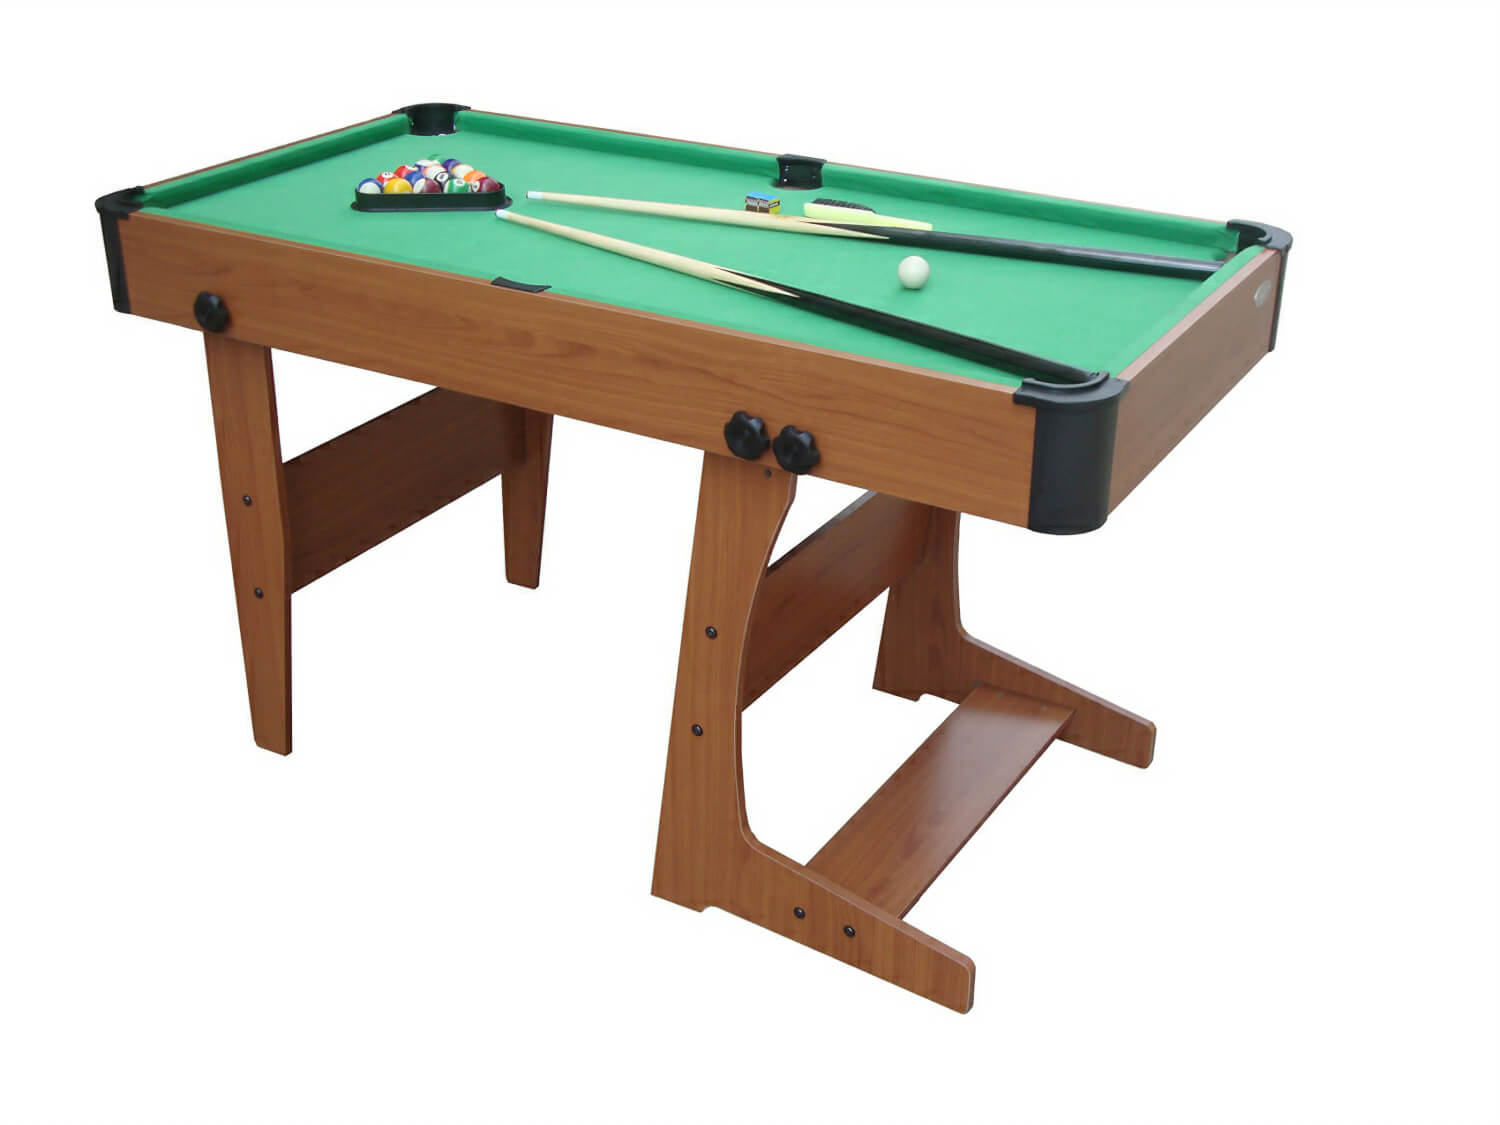 Gamesson eton l foot 4ft 6 39 39 pool table liberty games for Convert indoor pool table to outdoor